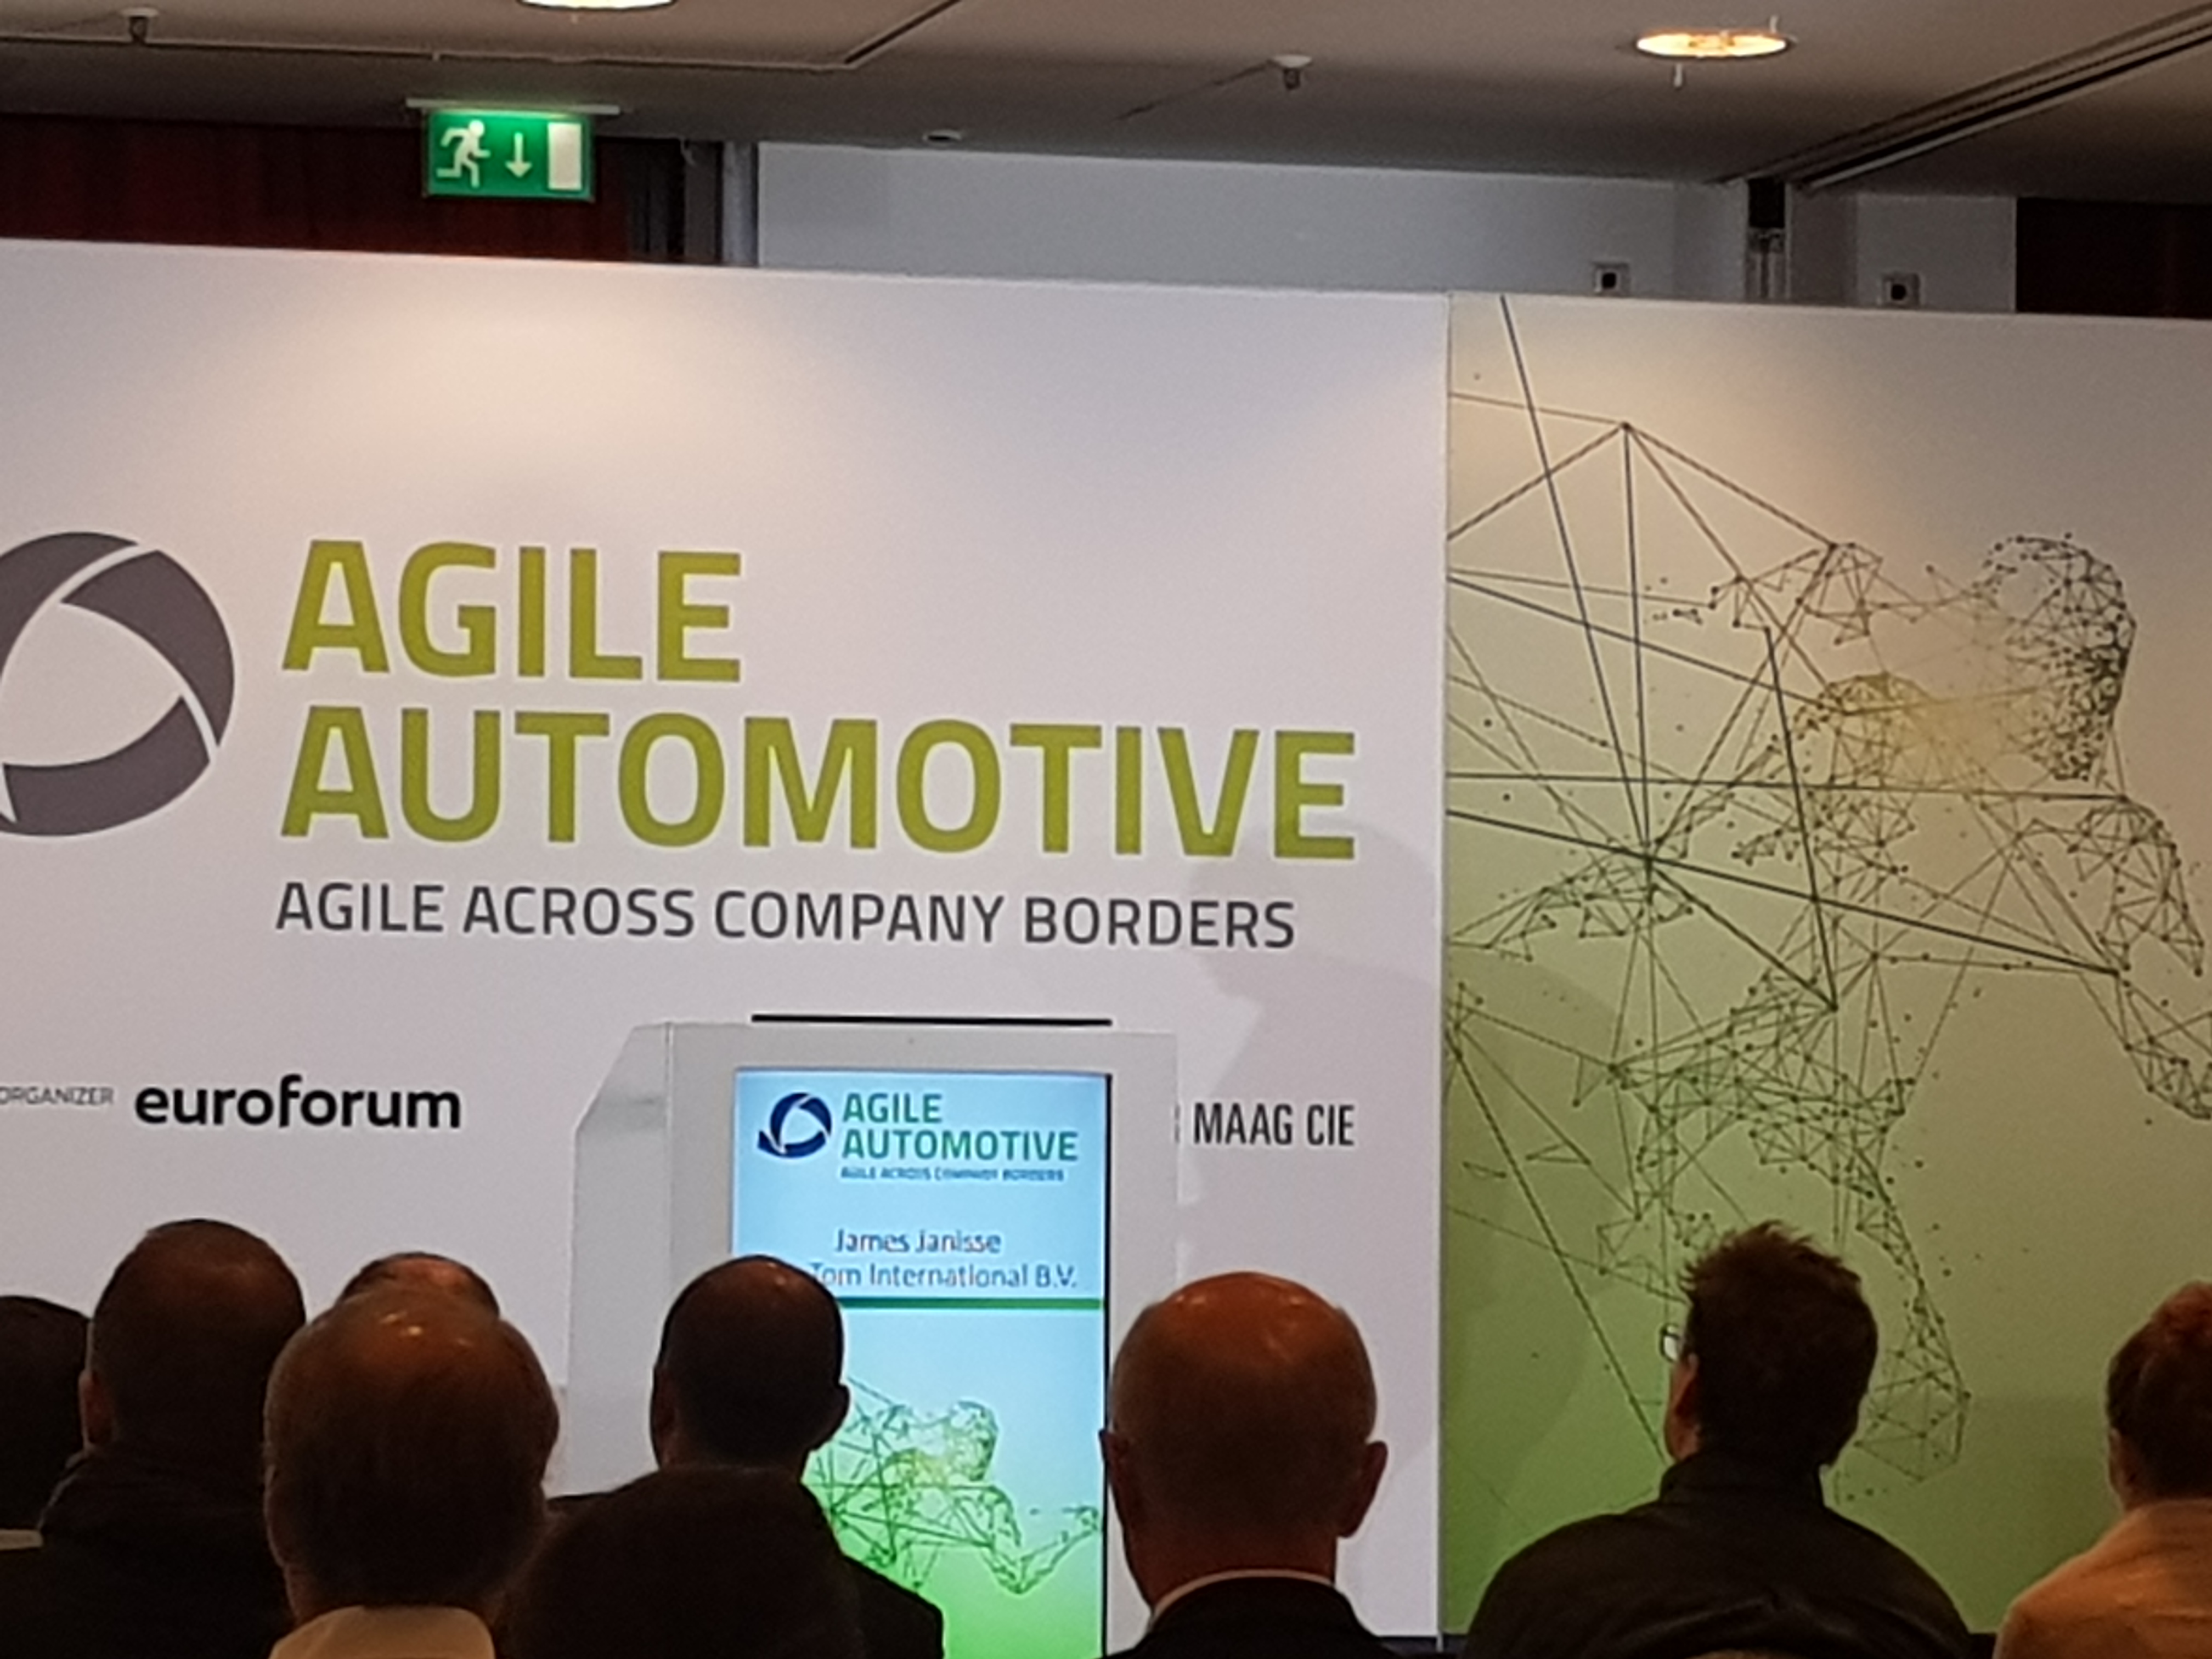 Agile_Automotive_112018.jpg